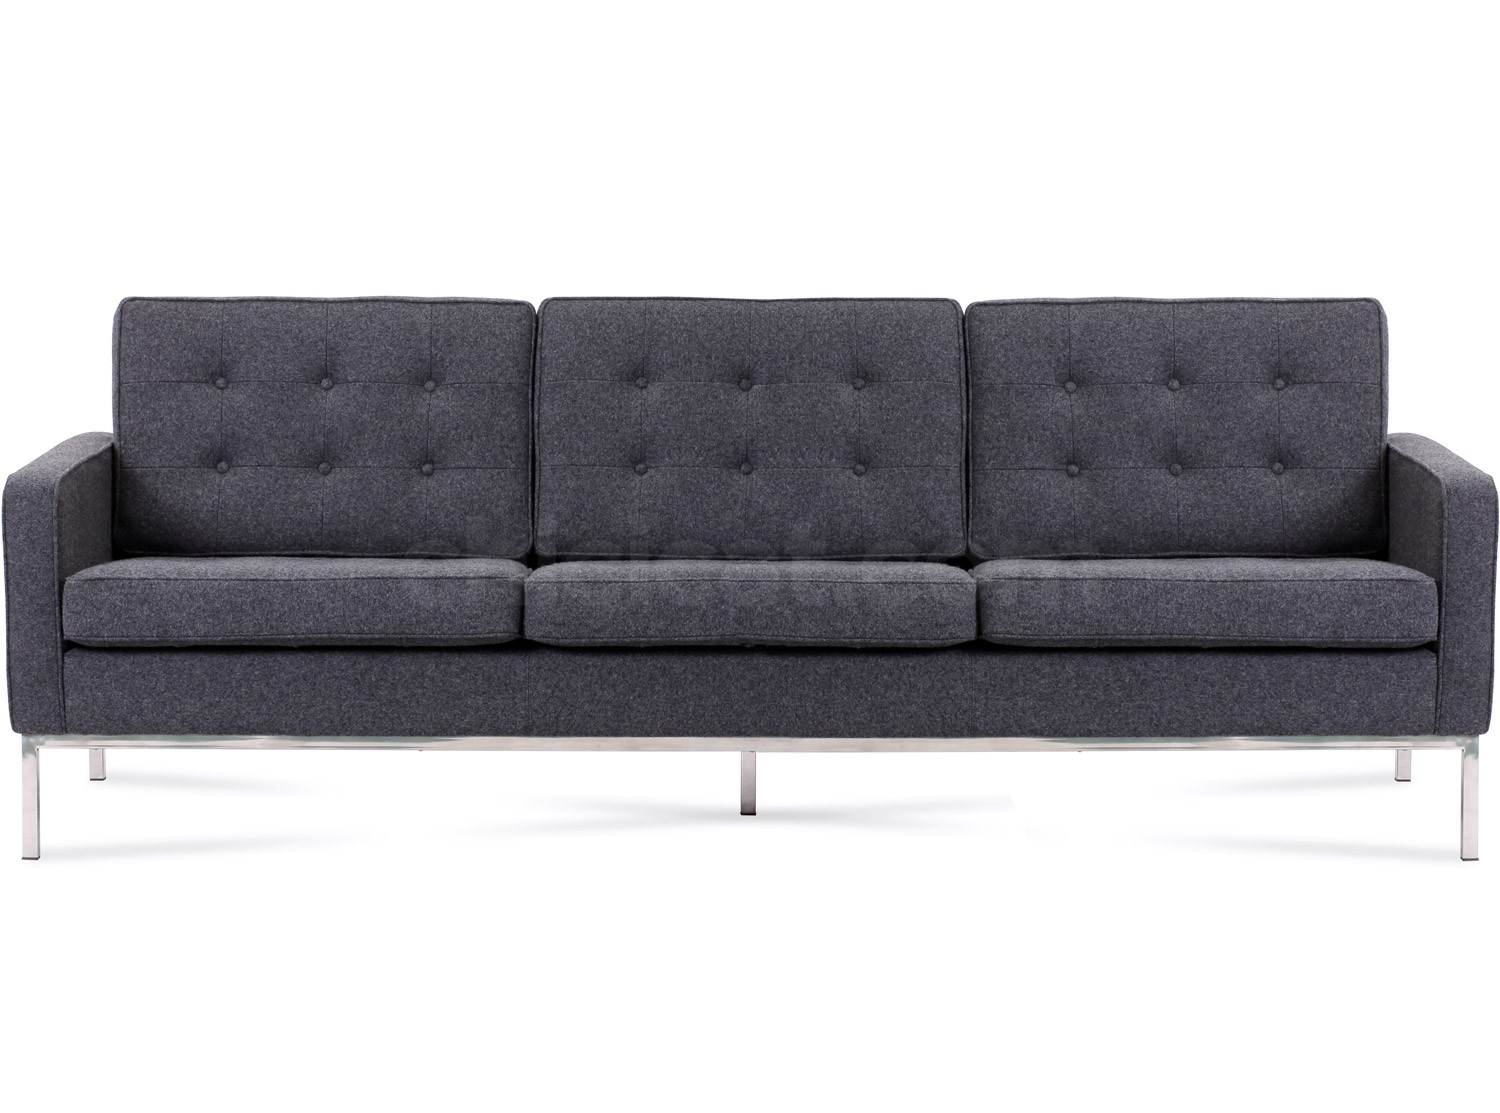 Florence Knoll Sofa 3 Seater Wool Platinum Replica